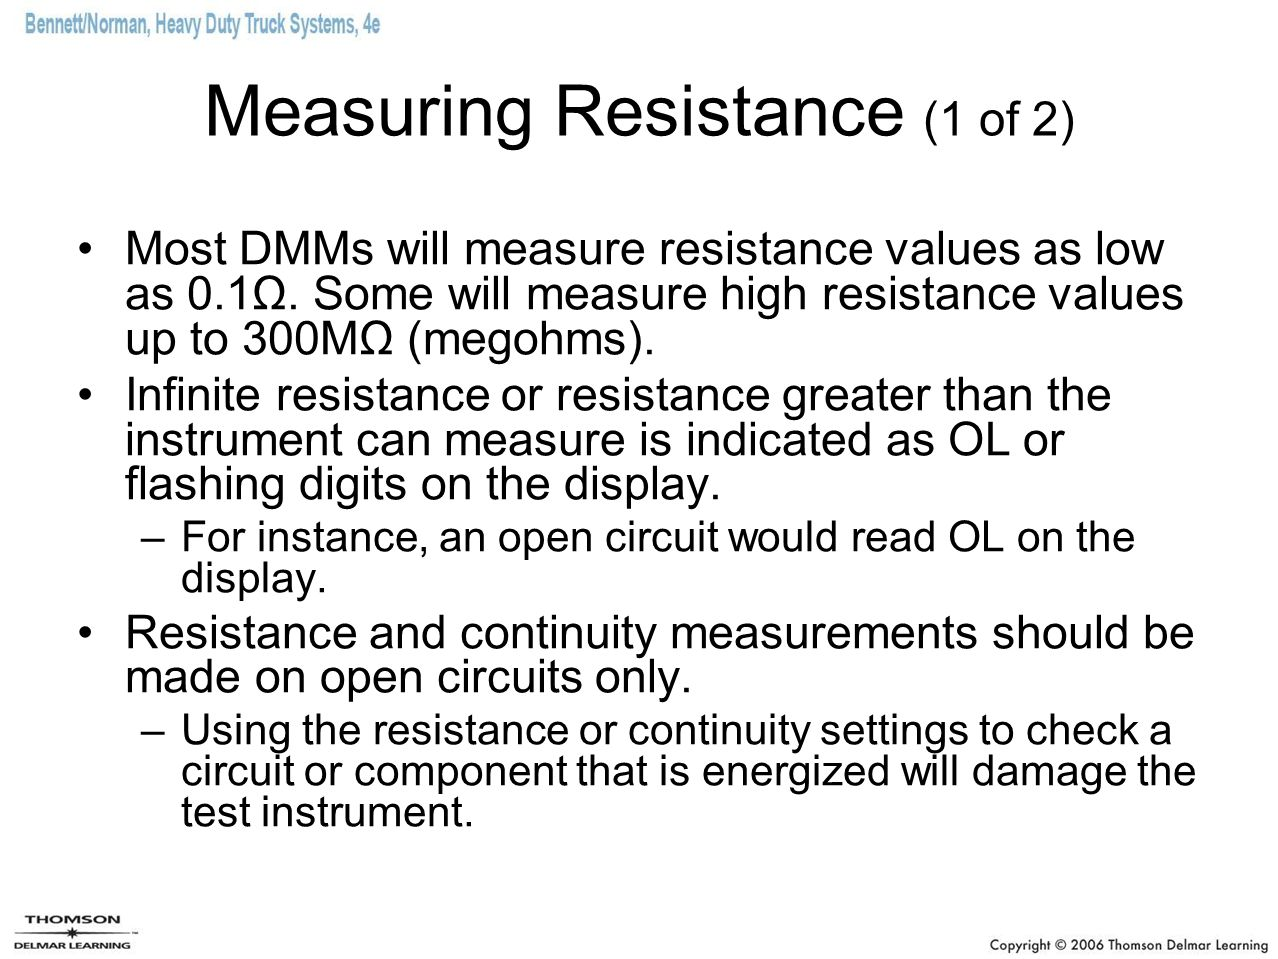 Measuring Resistance (1 of 2)